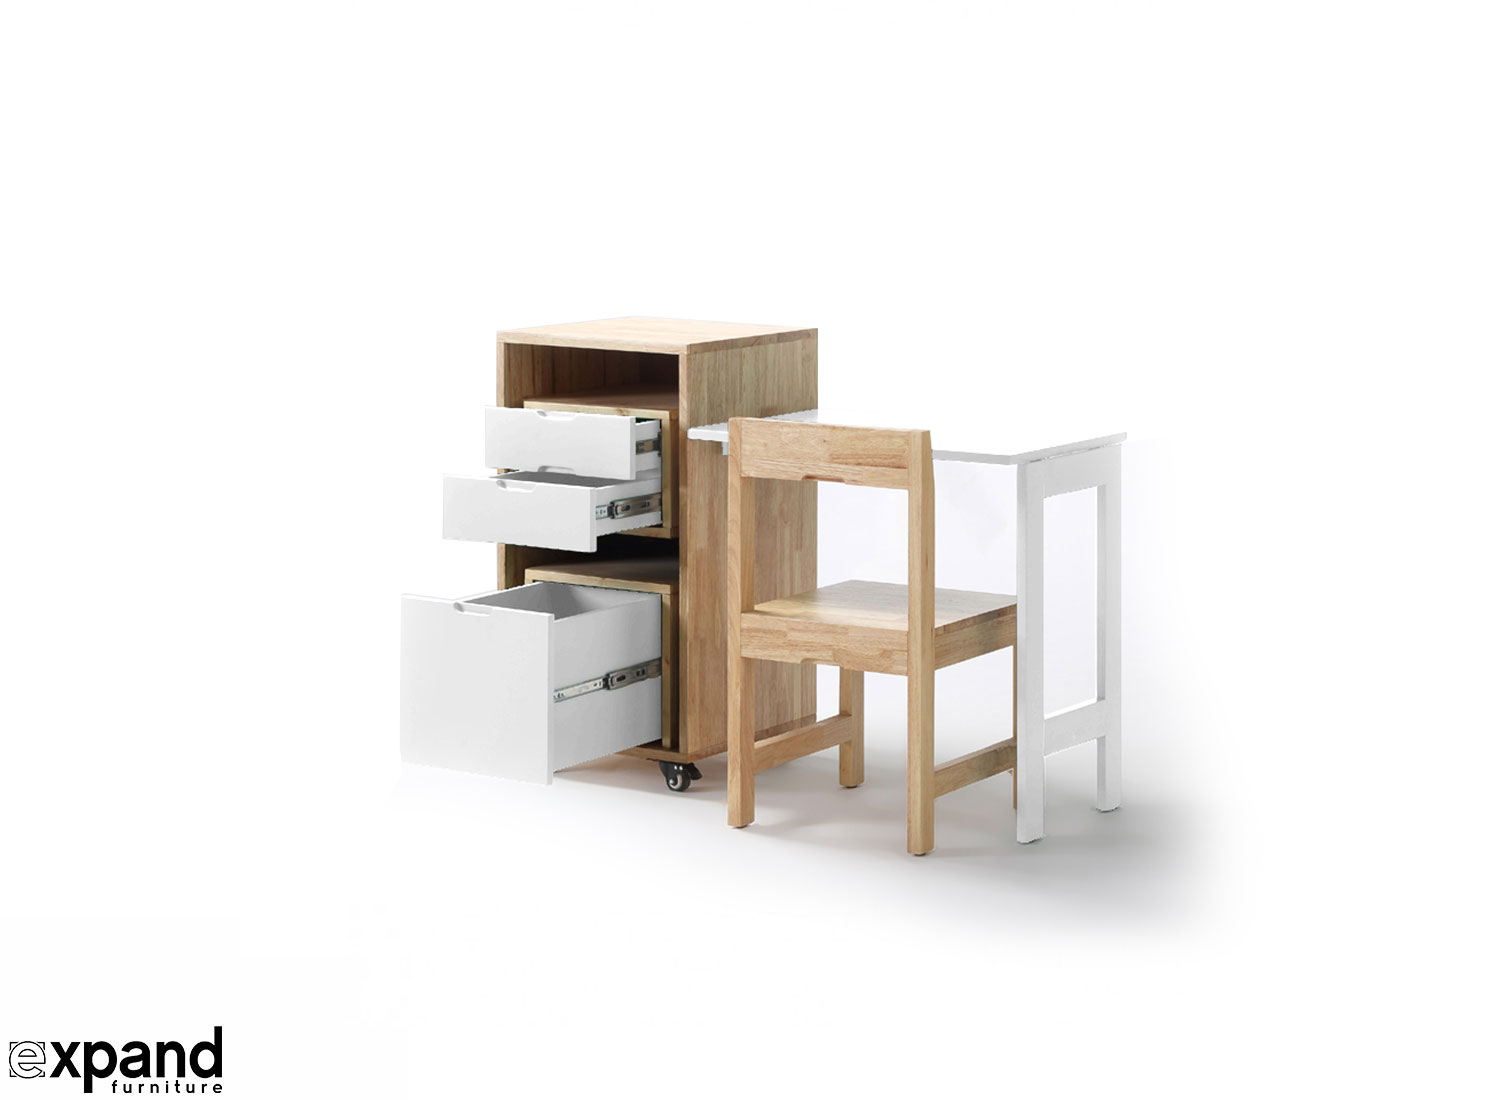 expandable furniture. prev expandable furniture d